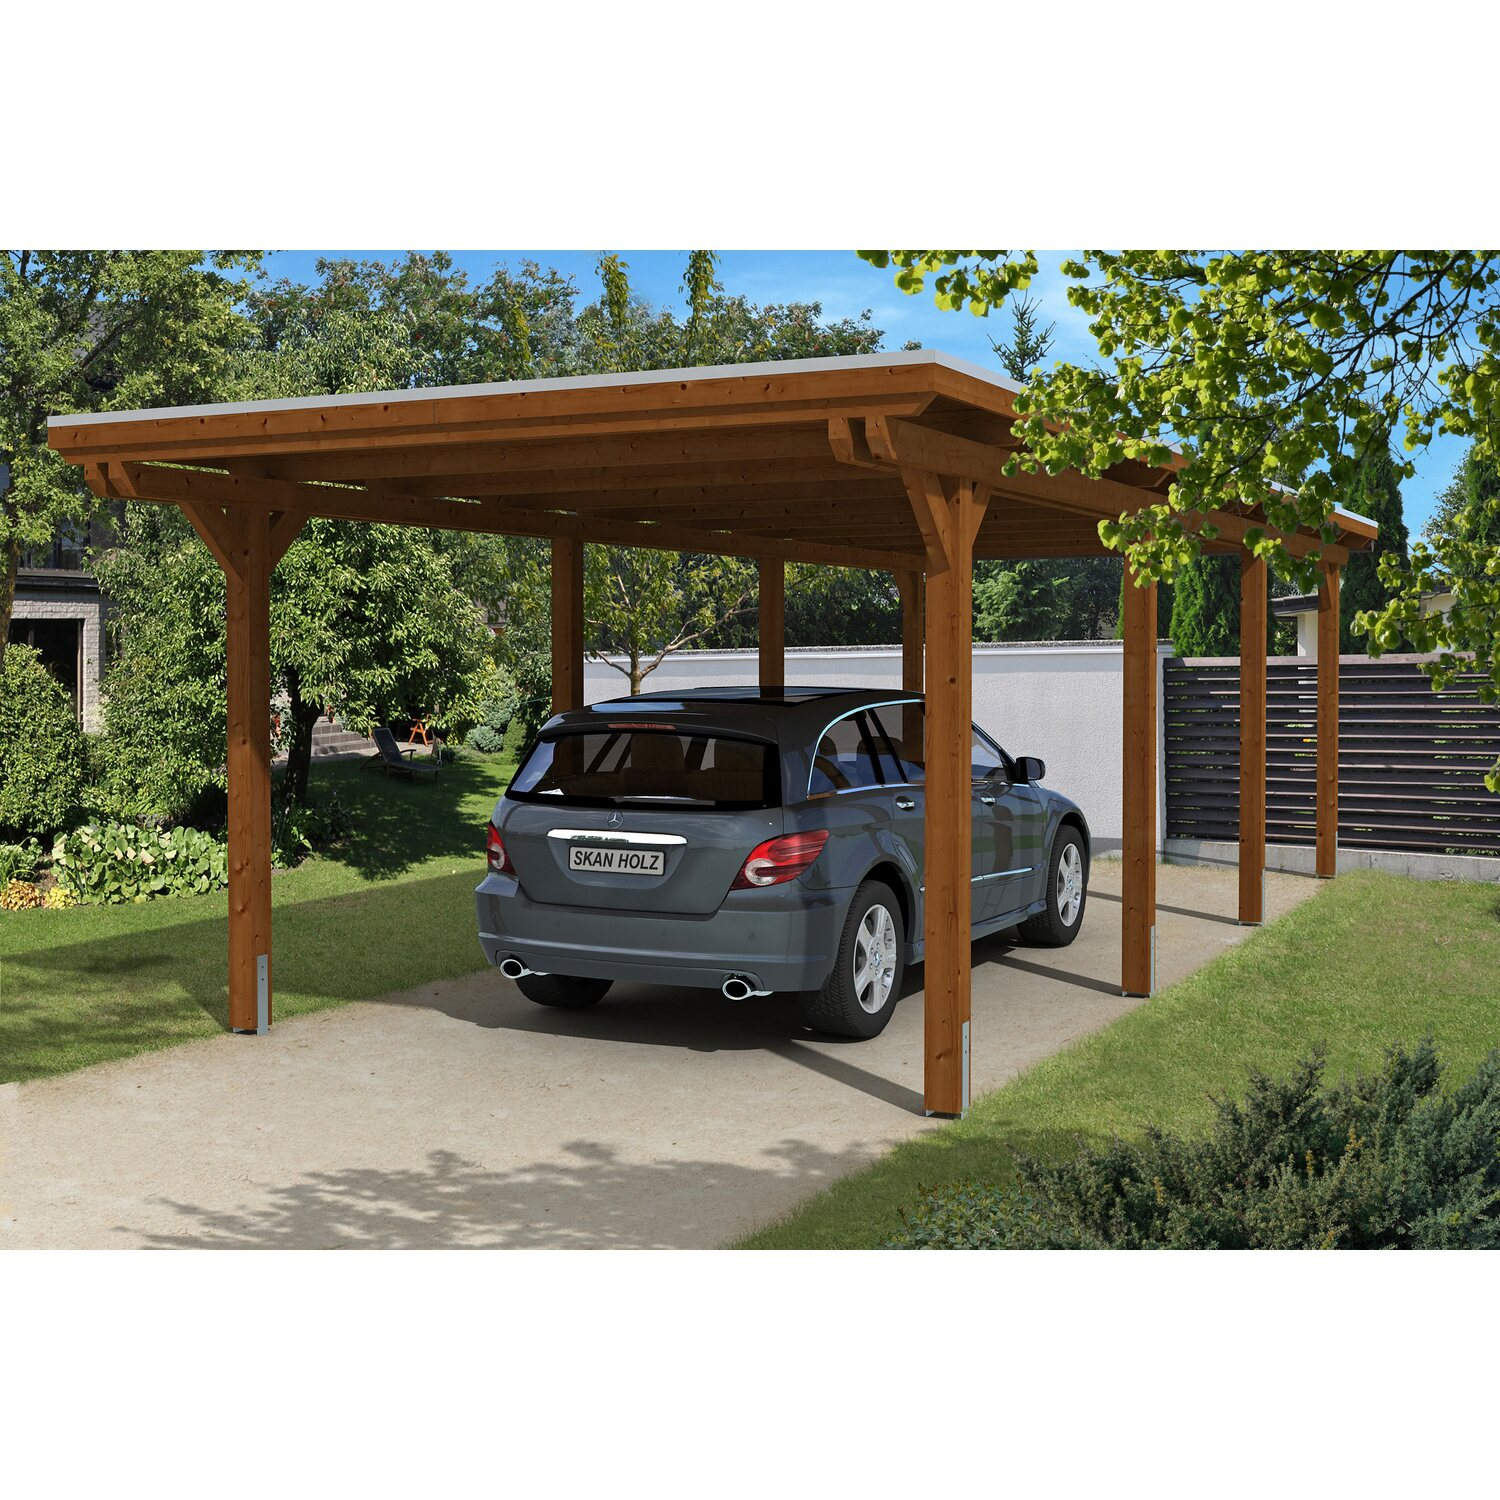 skan holz carport emsland 354 cm x 846 cm nussbaum kaufen bei obi. Black Bedroom Furniture Sets. Home Design Ideas